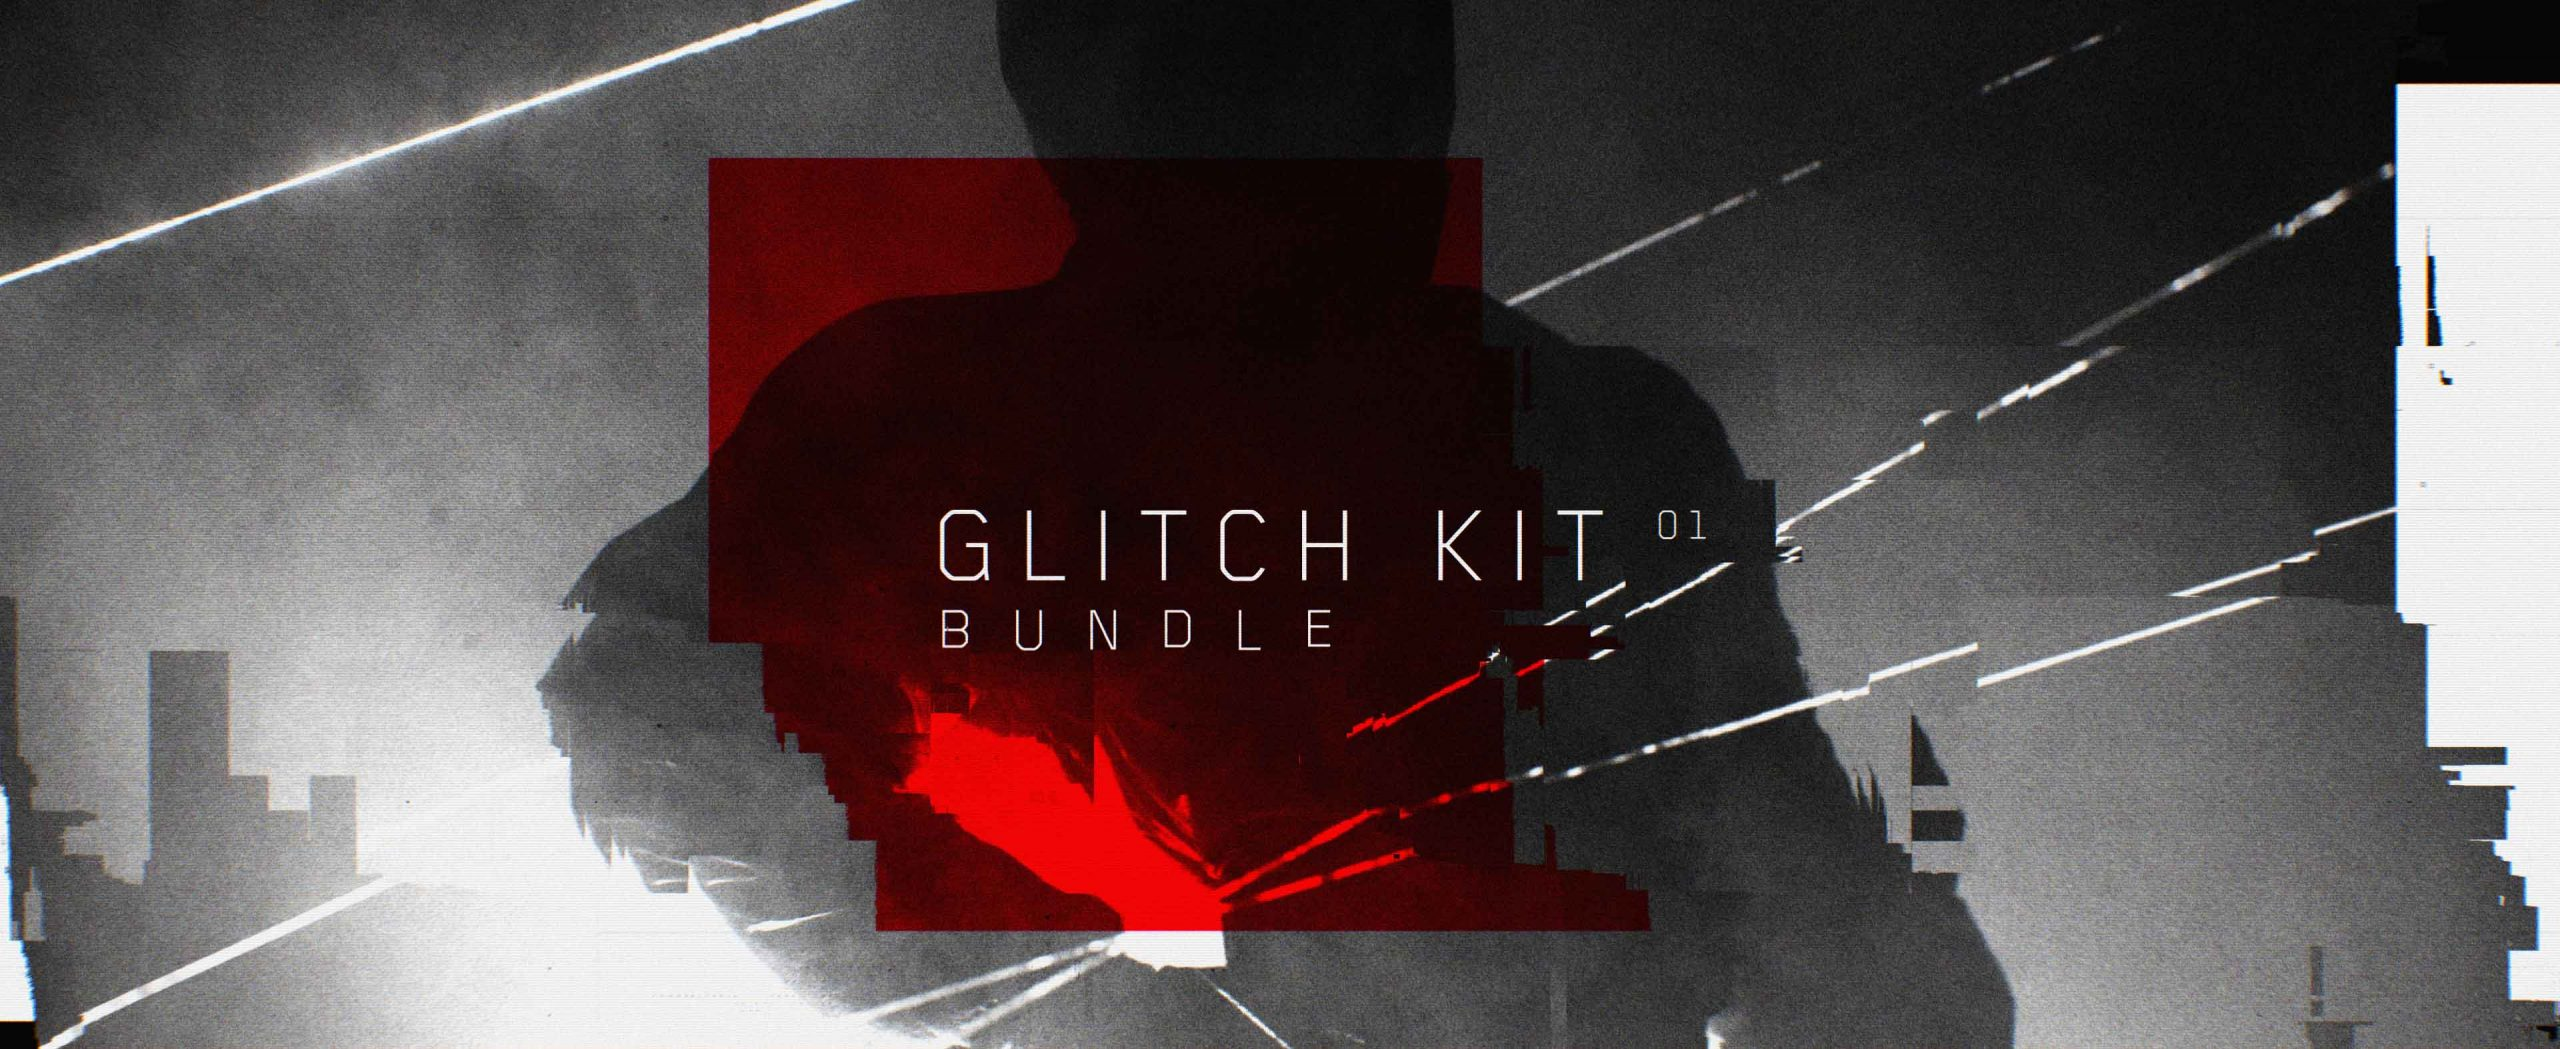 GLITCH KIT 01 : BUNDLE from helloluxx